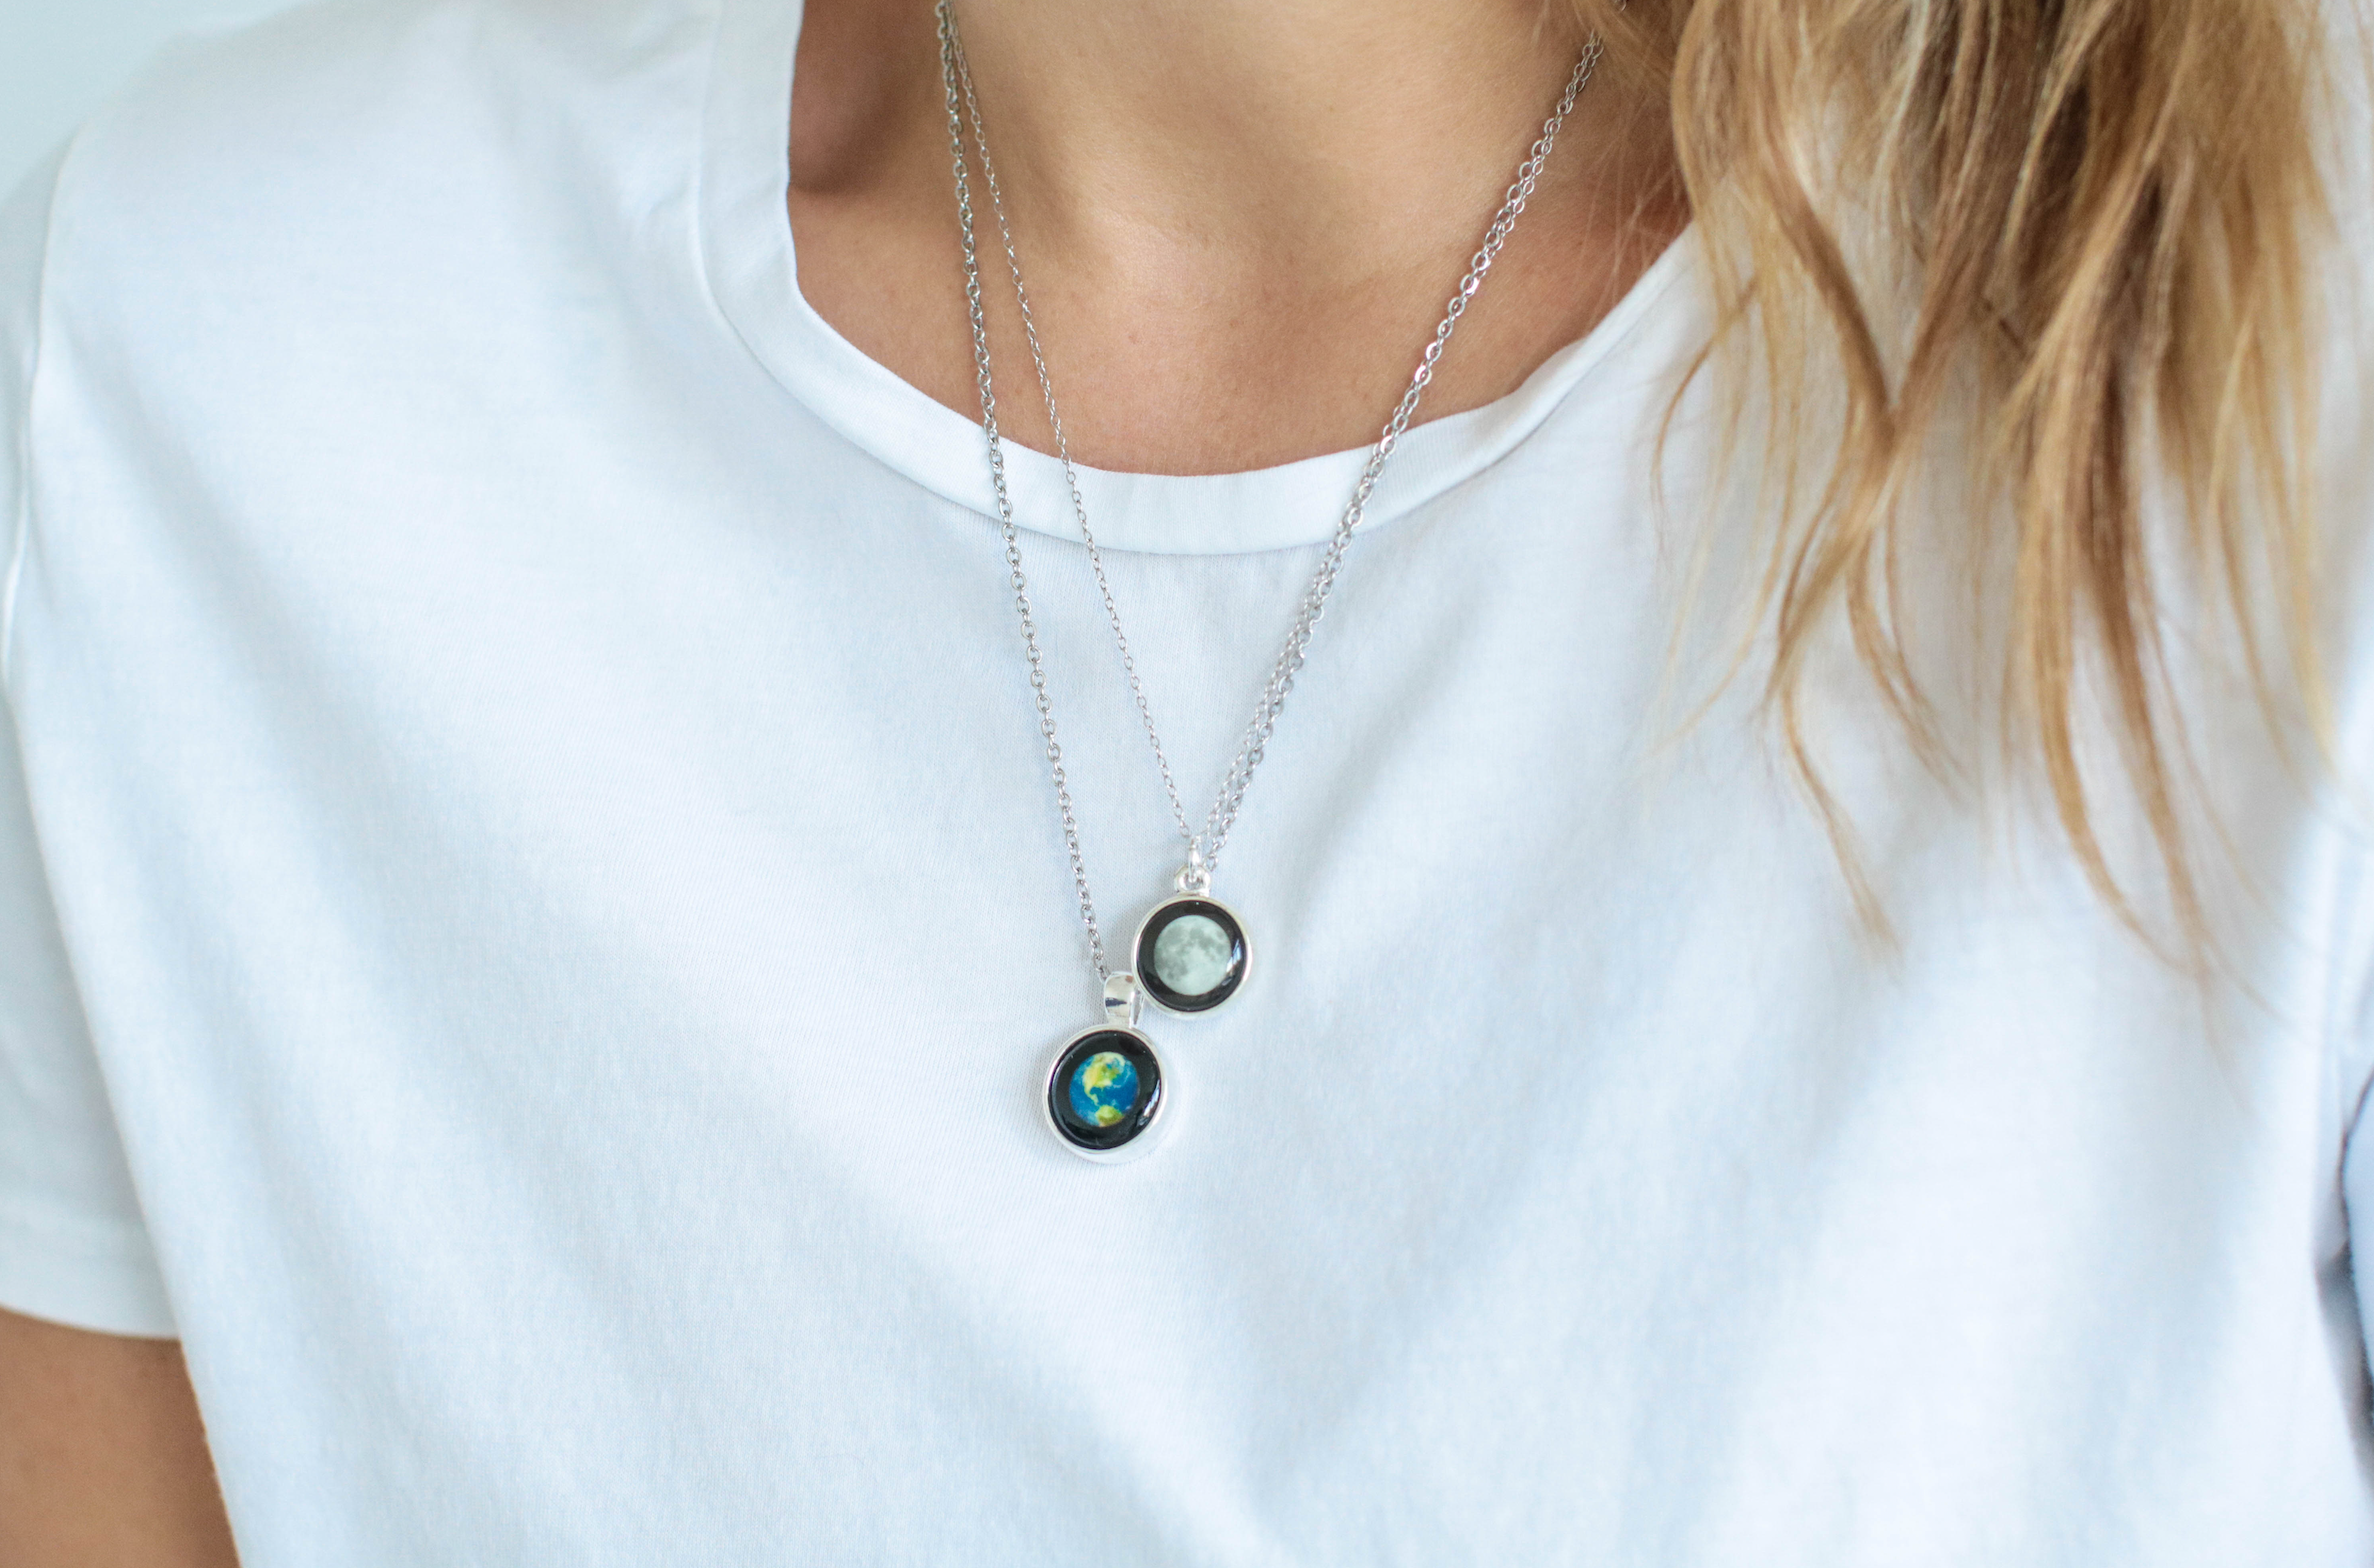 NEW LAUNCH: Earthglow Necklace